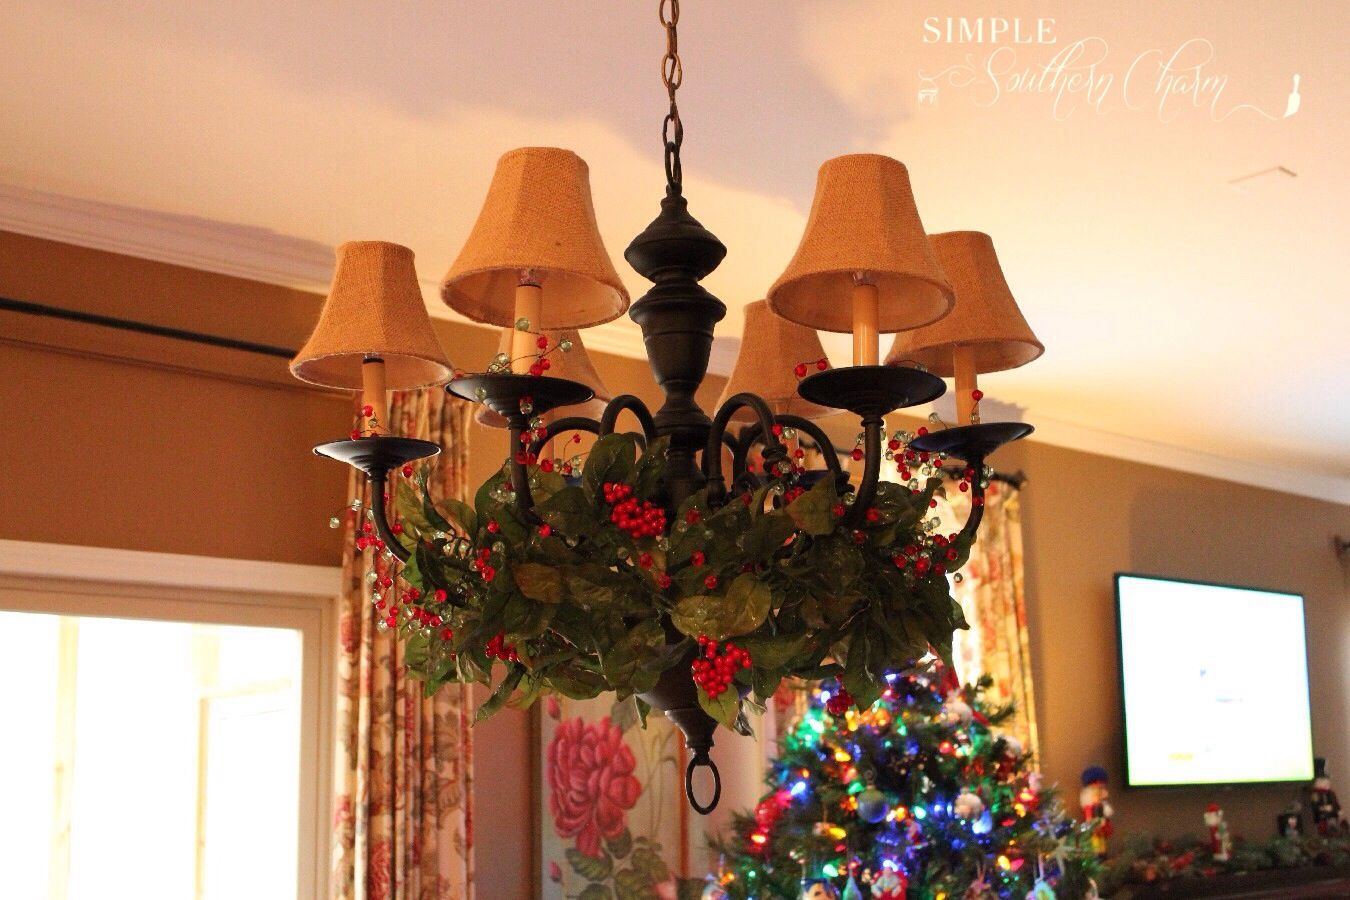 Want to learn how to spray paint a chandelier check out these easy want to learn how to spray paint a chandelier check out these easy instructions and arubaitofo Choice Image